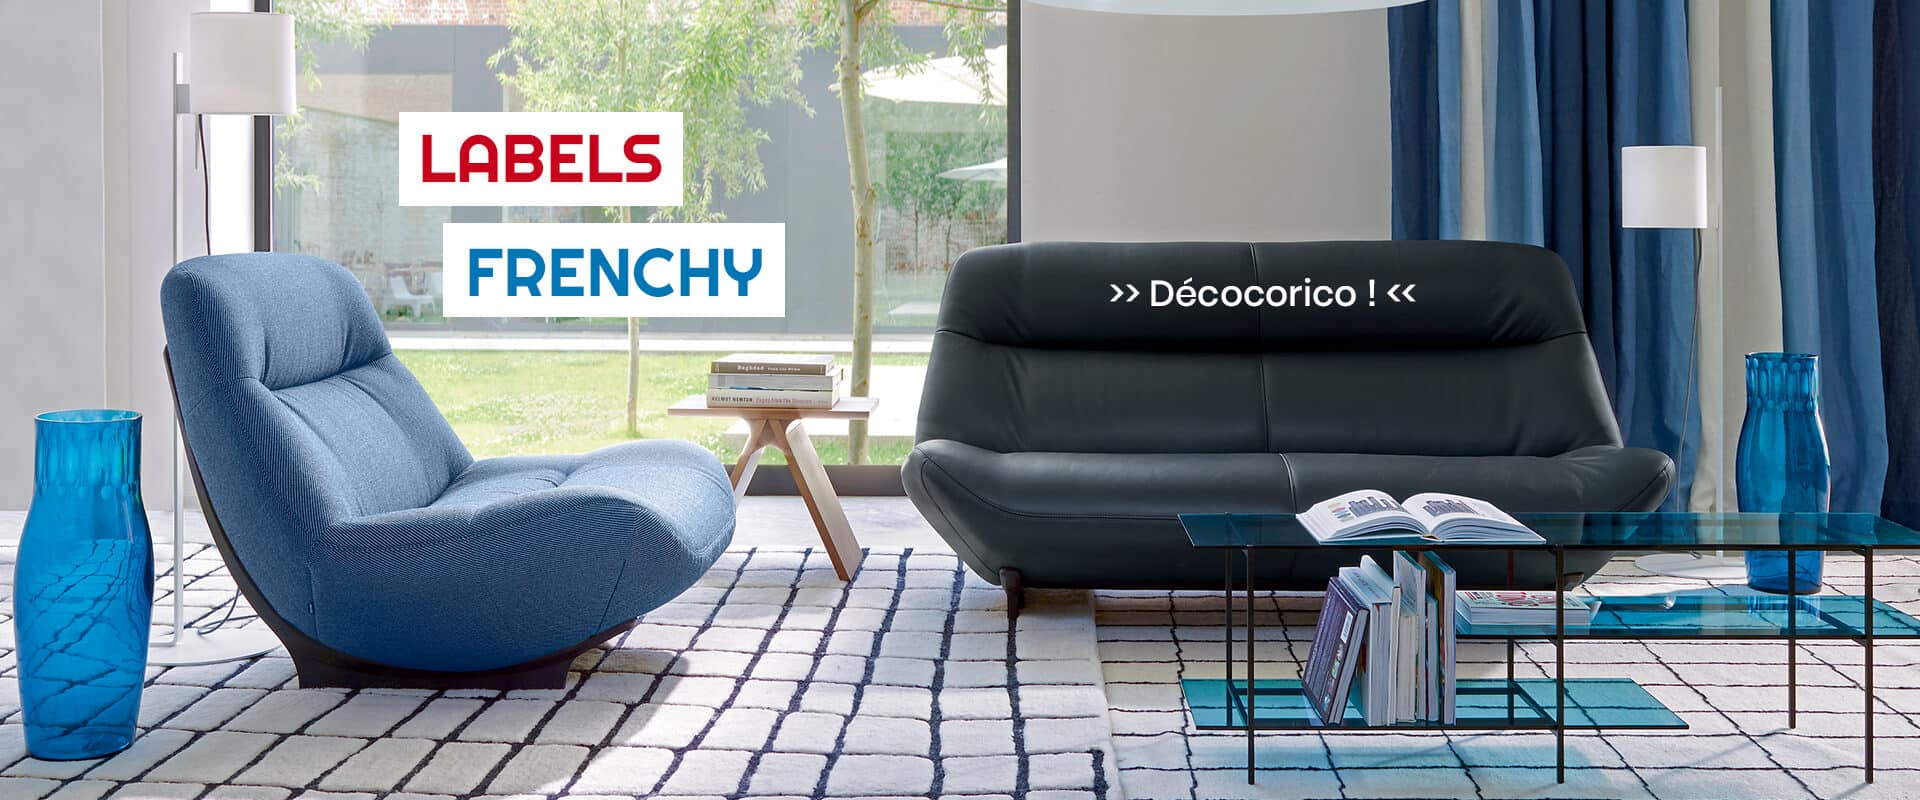 labels frenchy design francais zeeloft